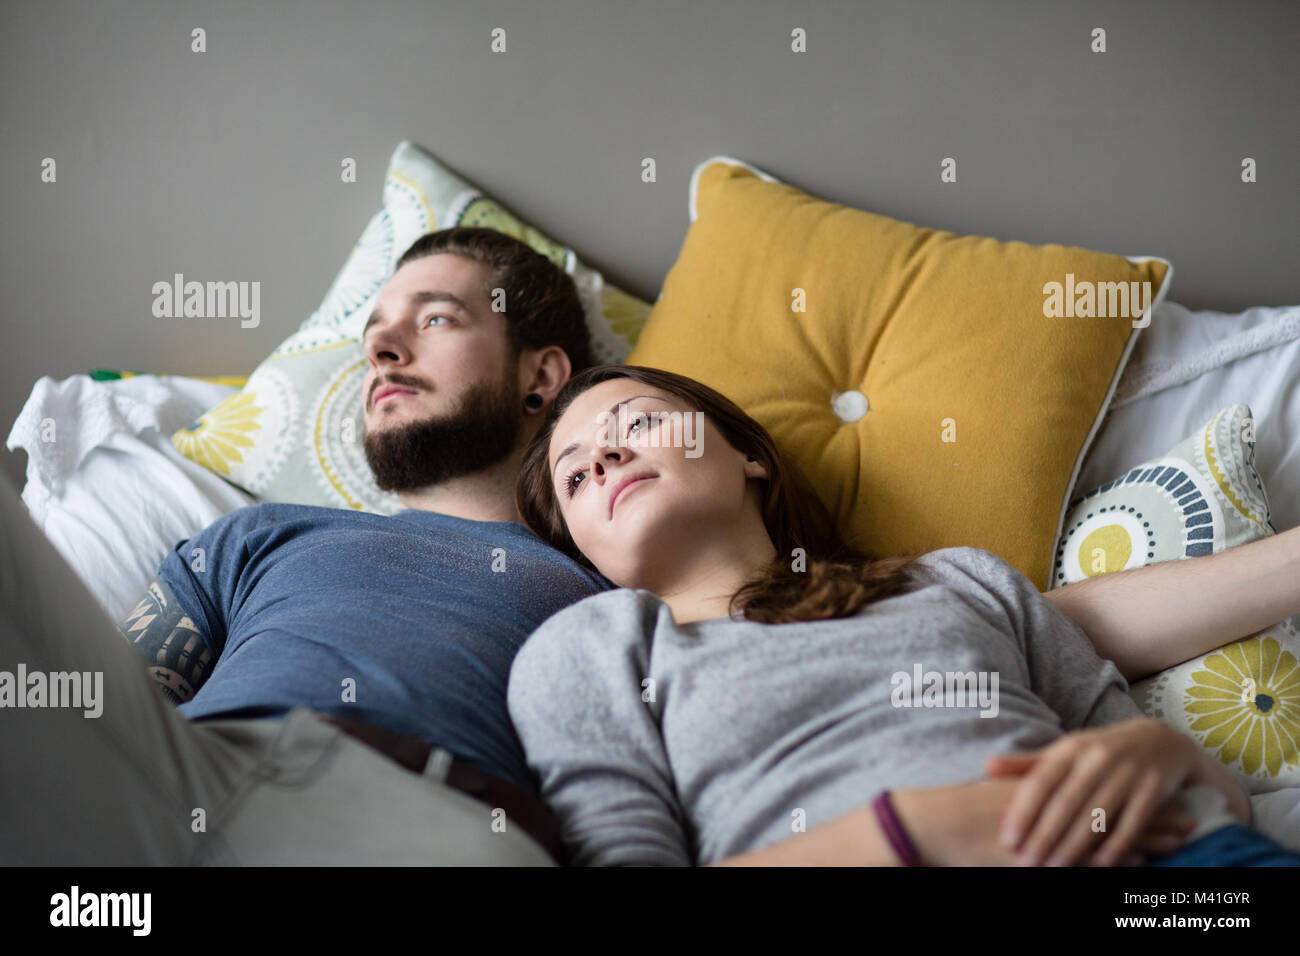 Young couple relaxing in bed - Stock Image